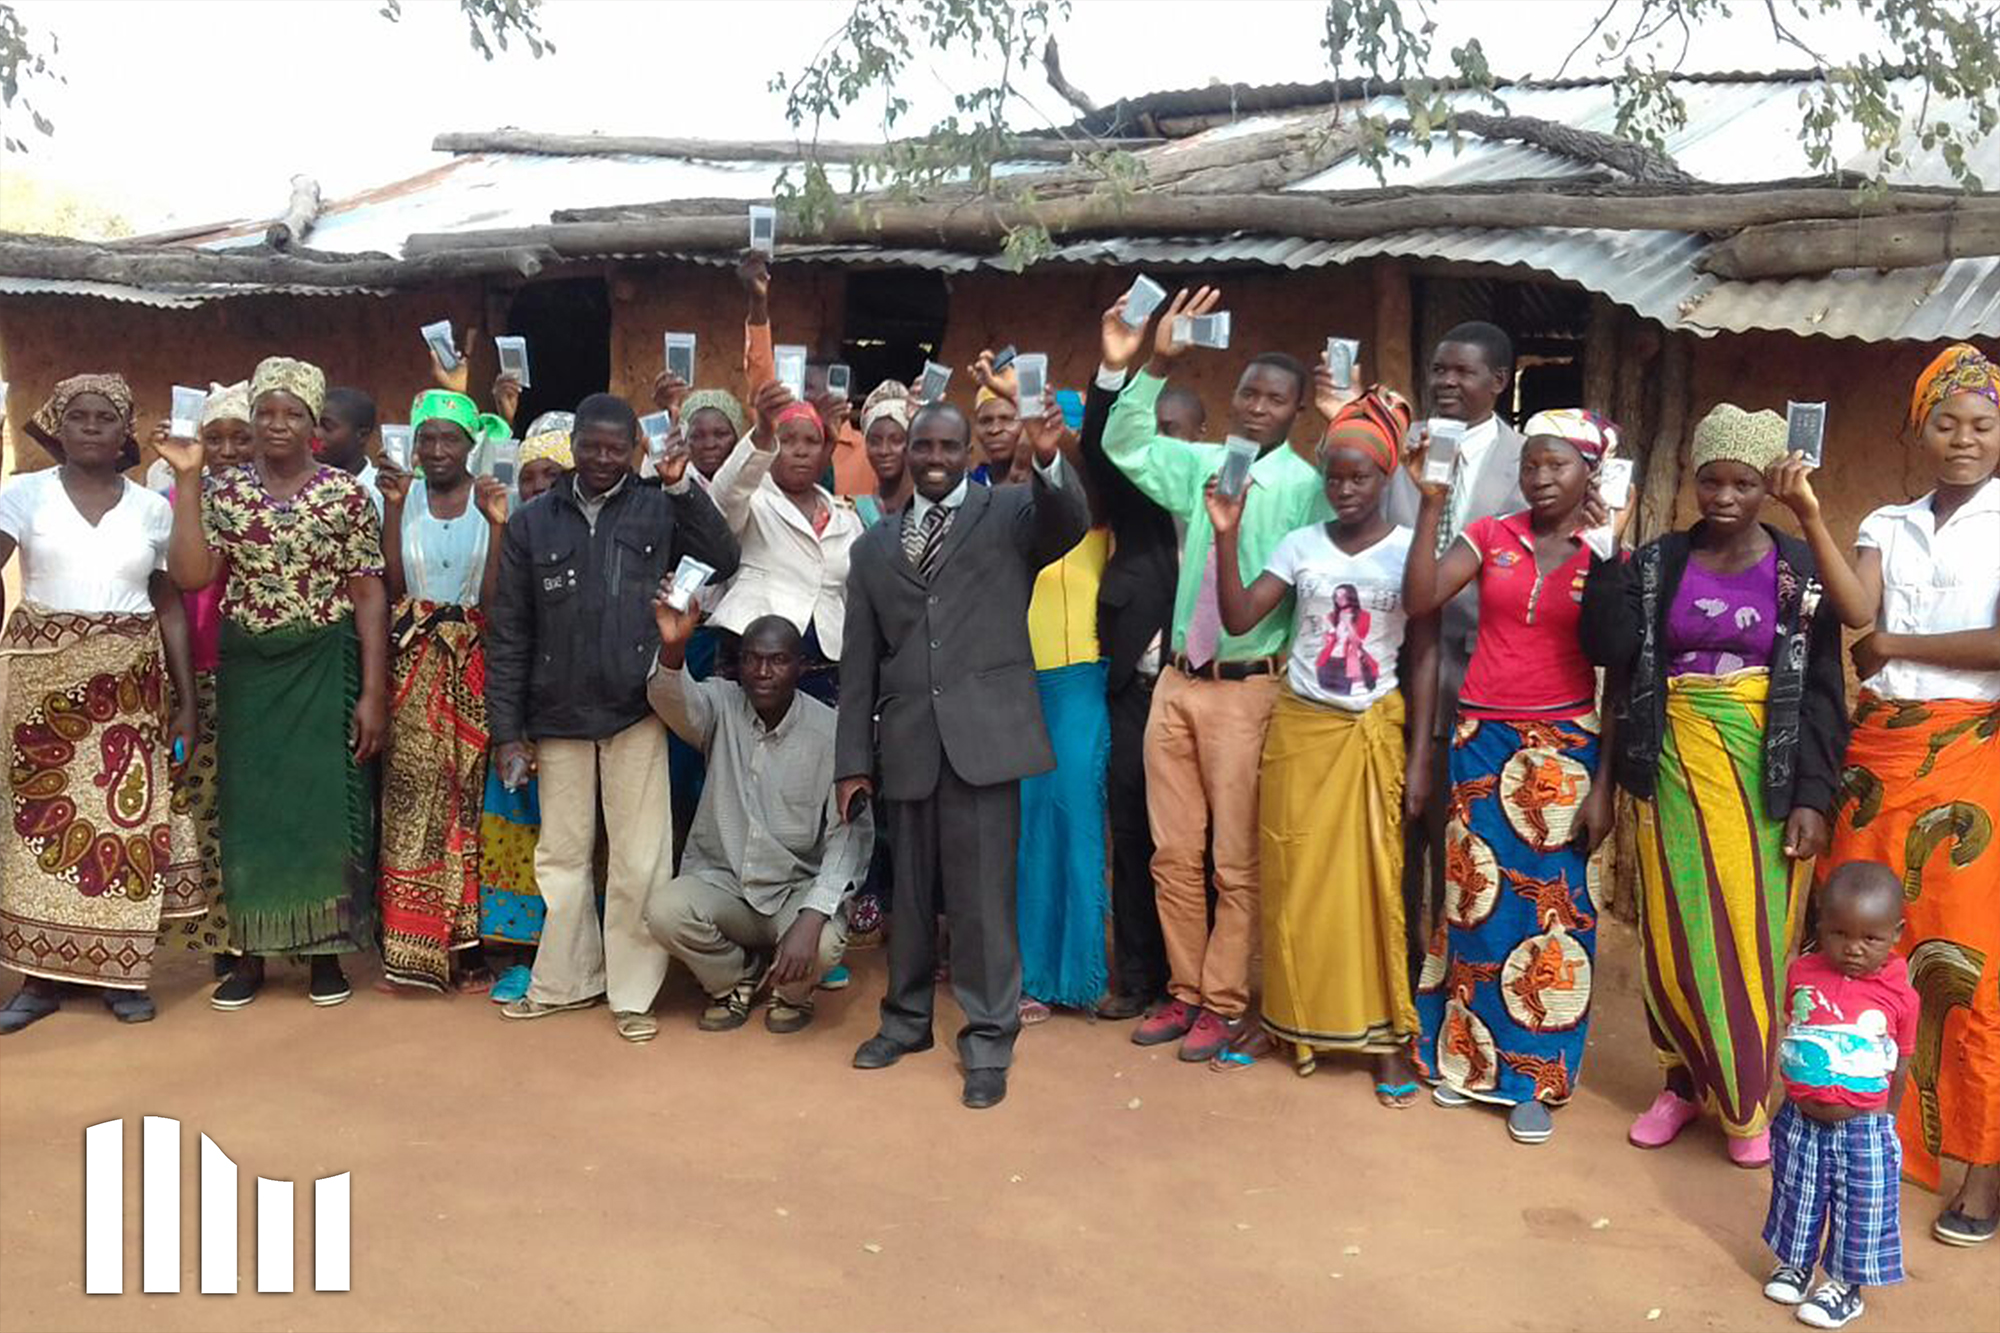 Mozambique communities urgently requesting more audio Bibles